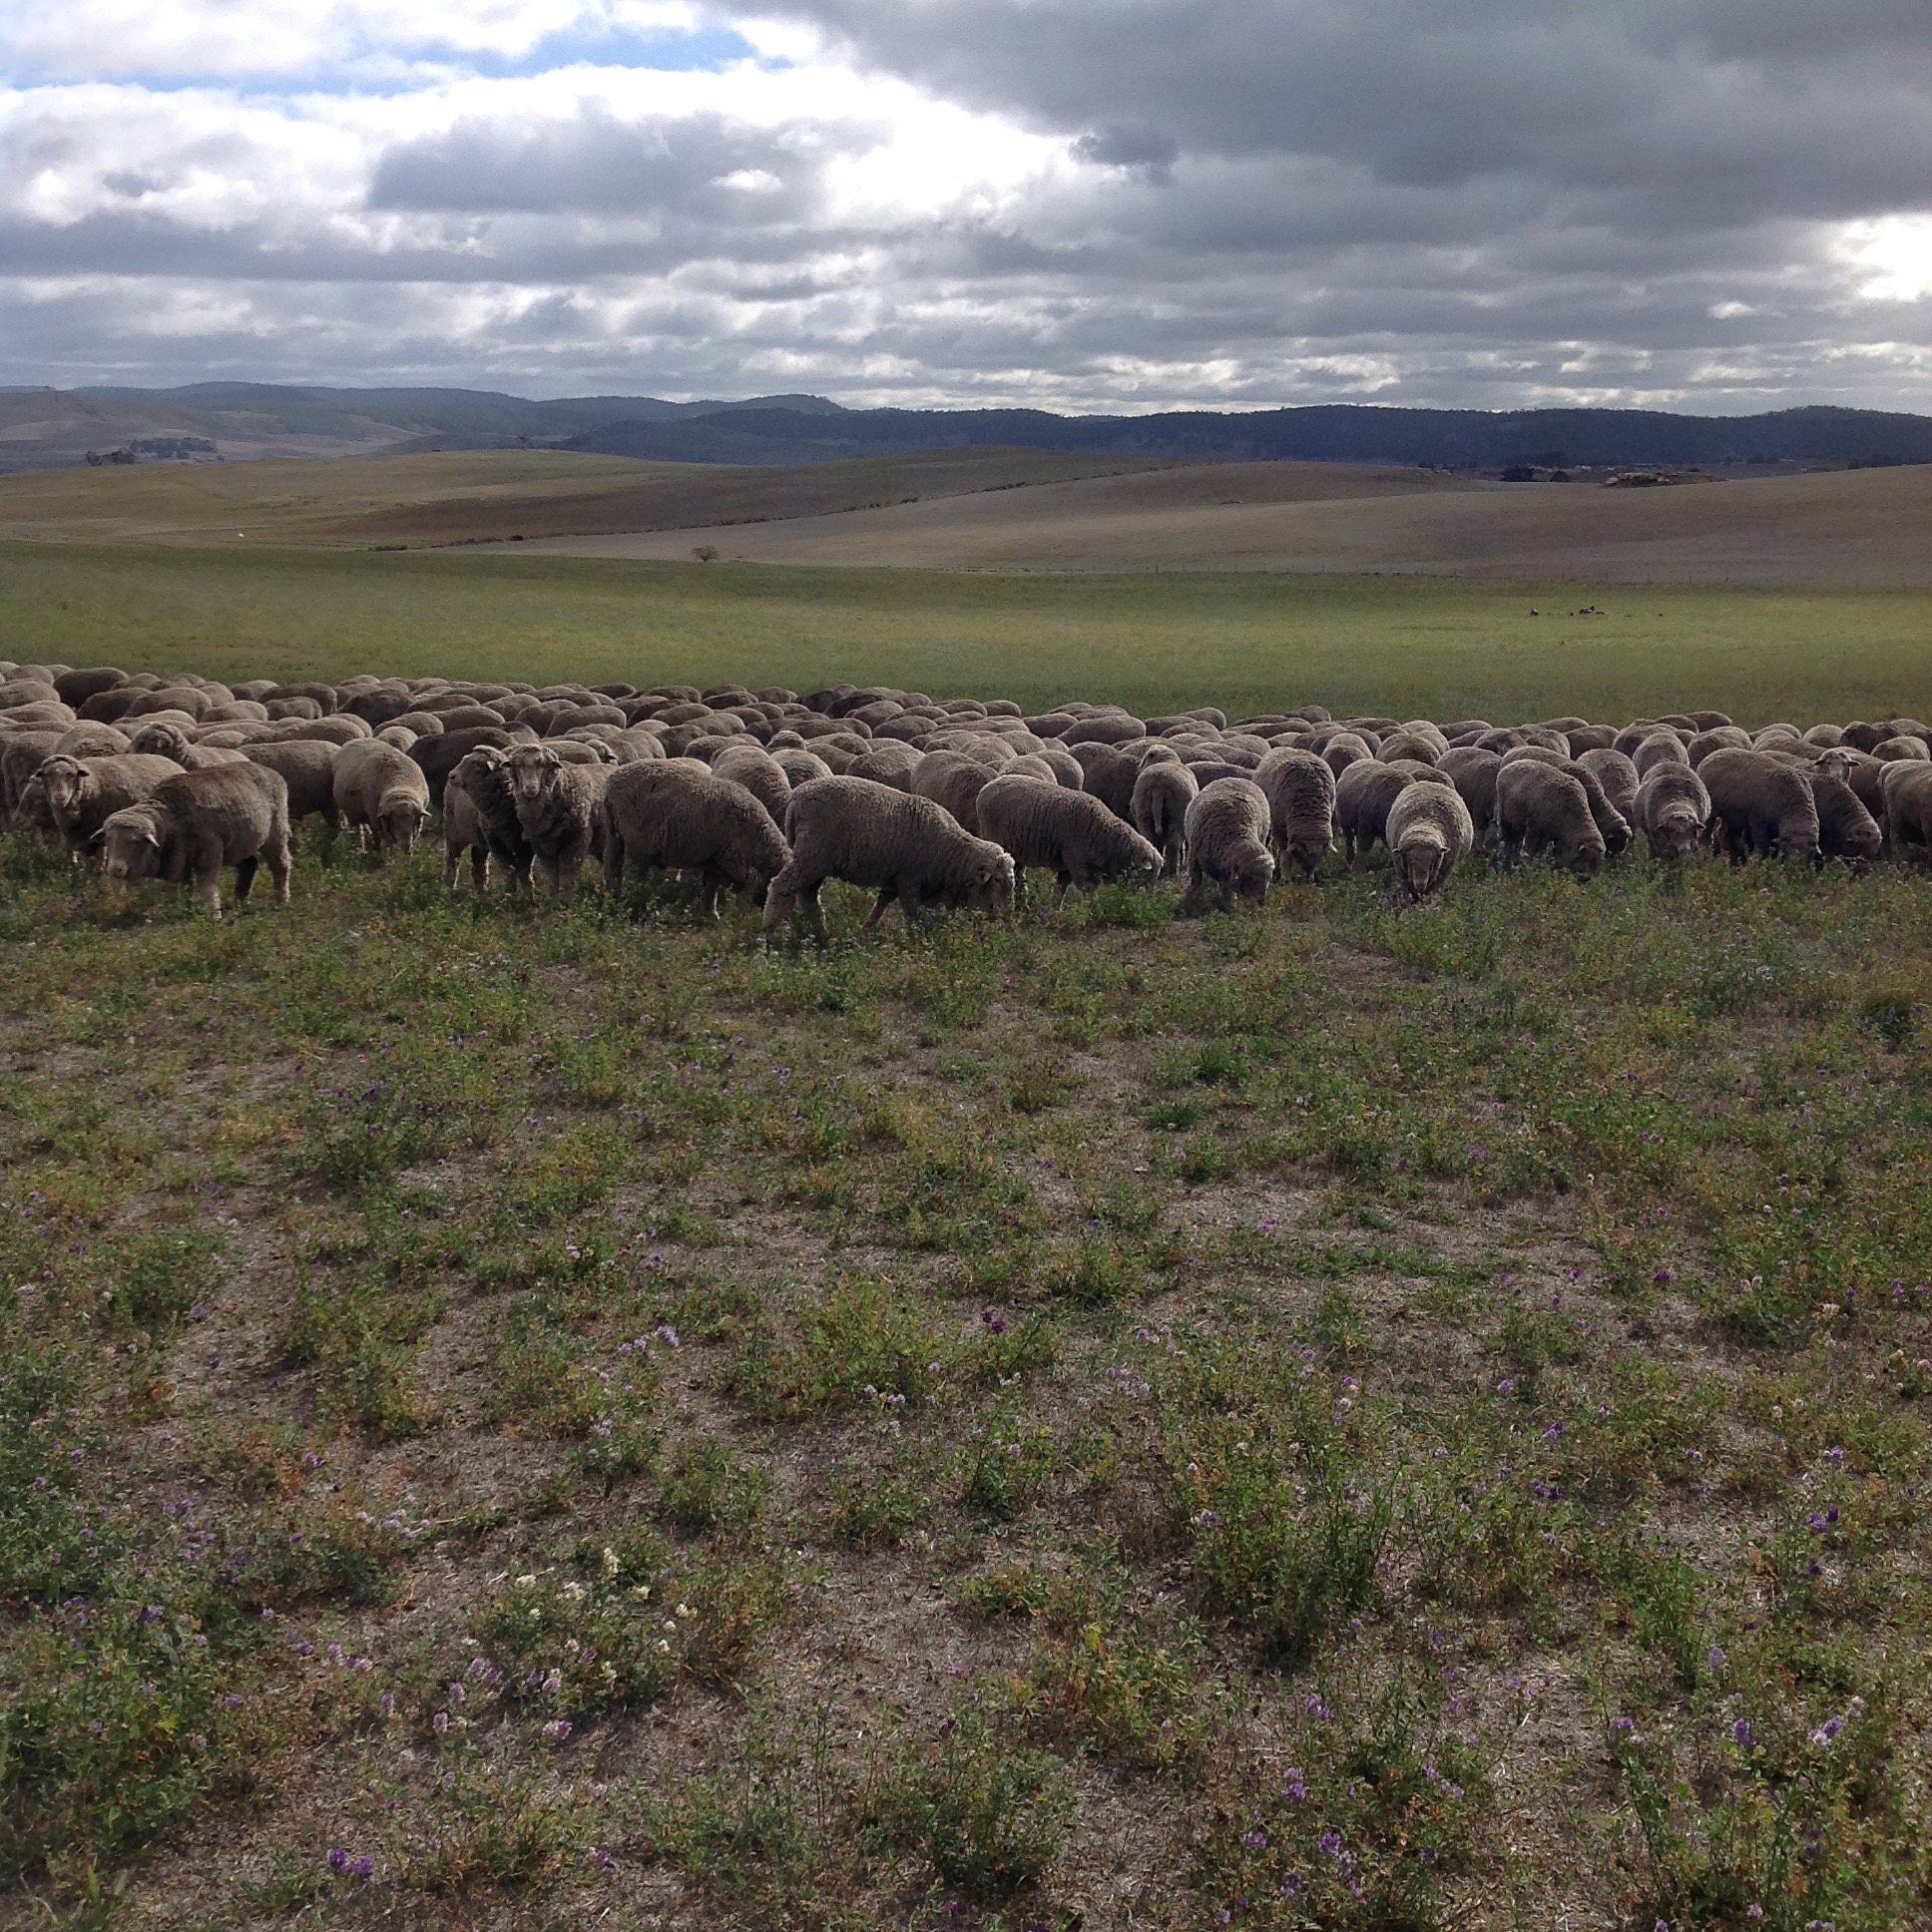 P6: Turning back north. They've been happily grazing into the southerly breeze, but it's time to start heading back.